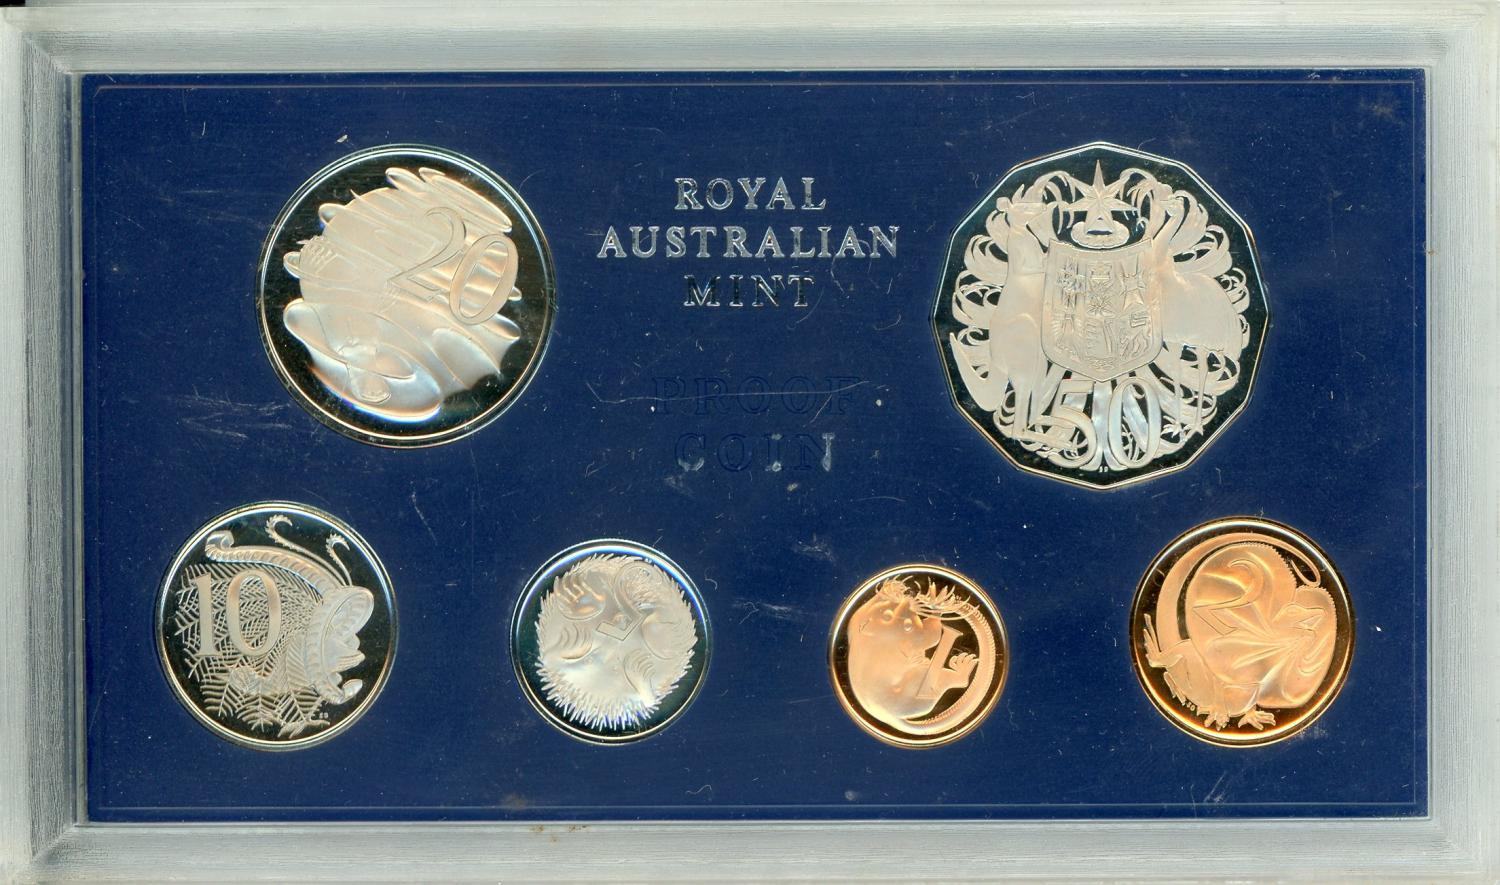 Thumbnail for 1969 Australian Proof Set - Few Coins Are Rotated